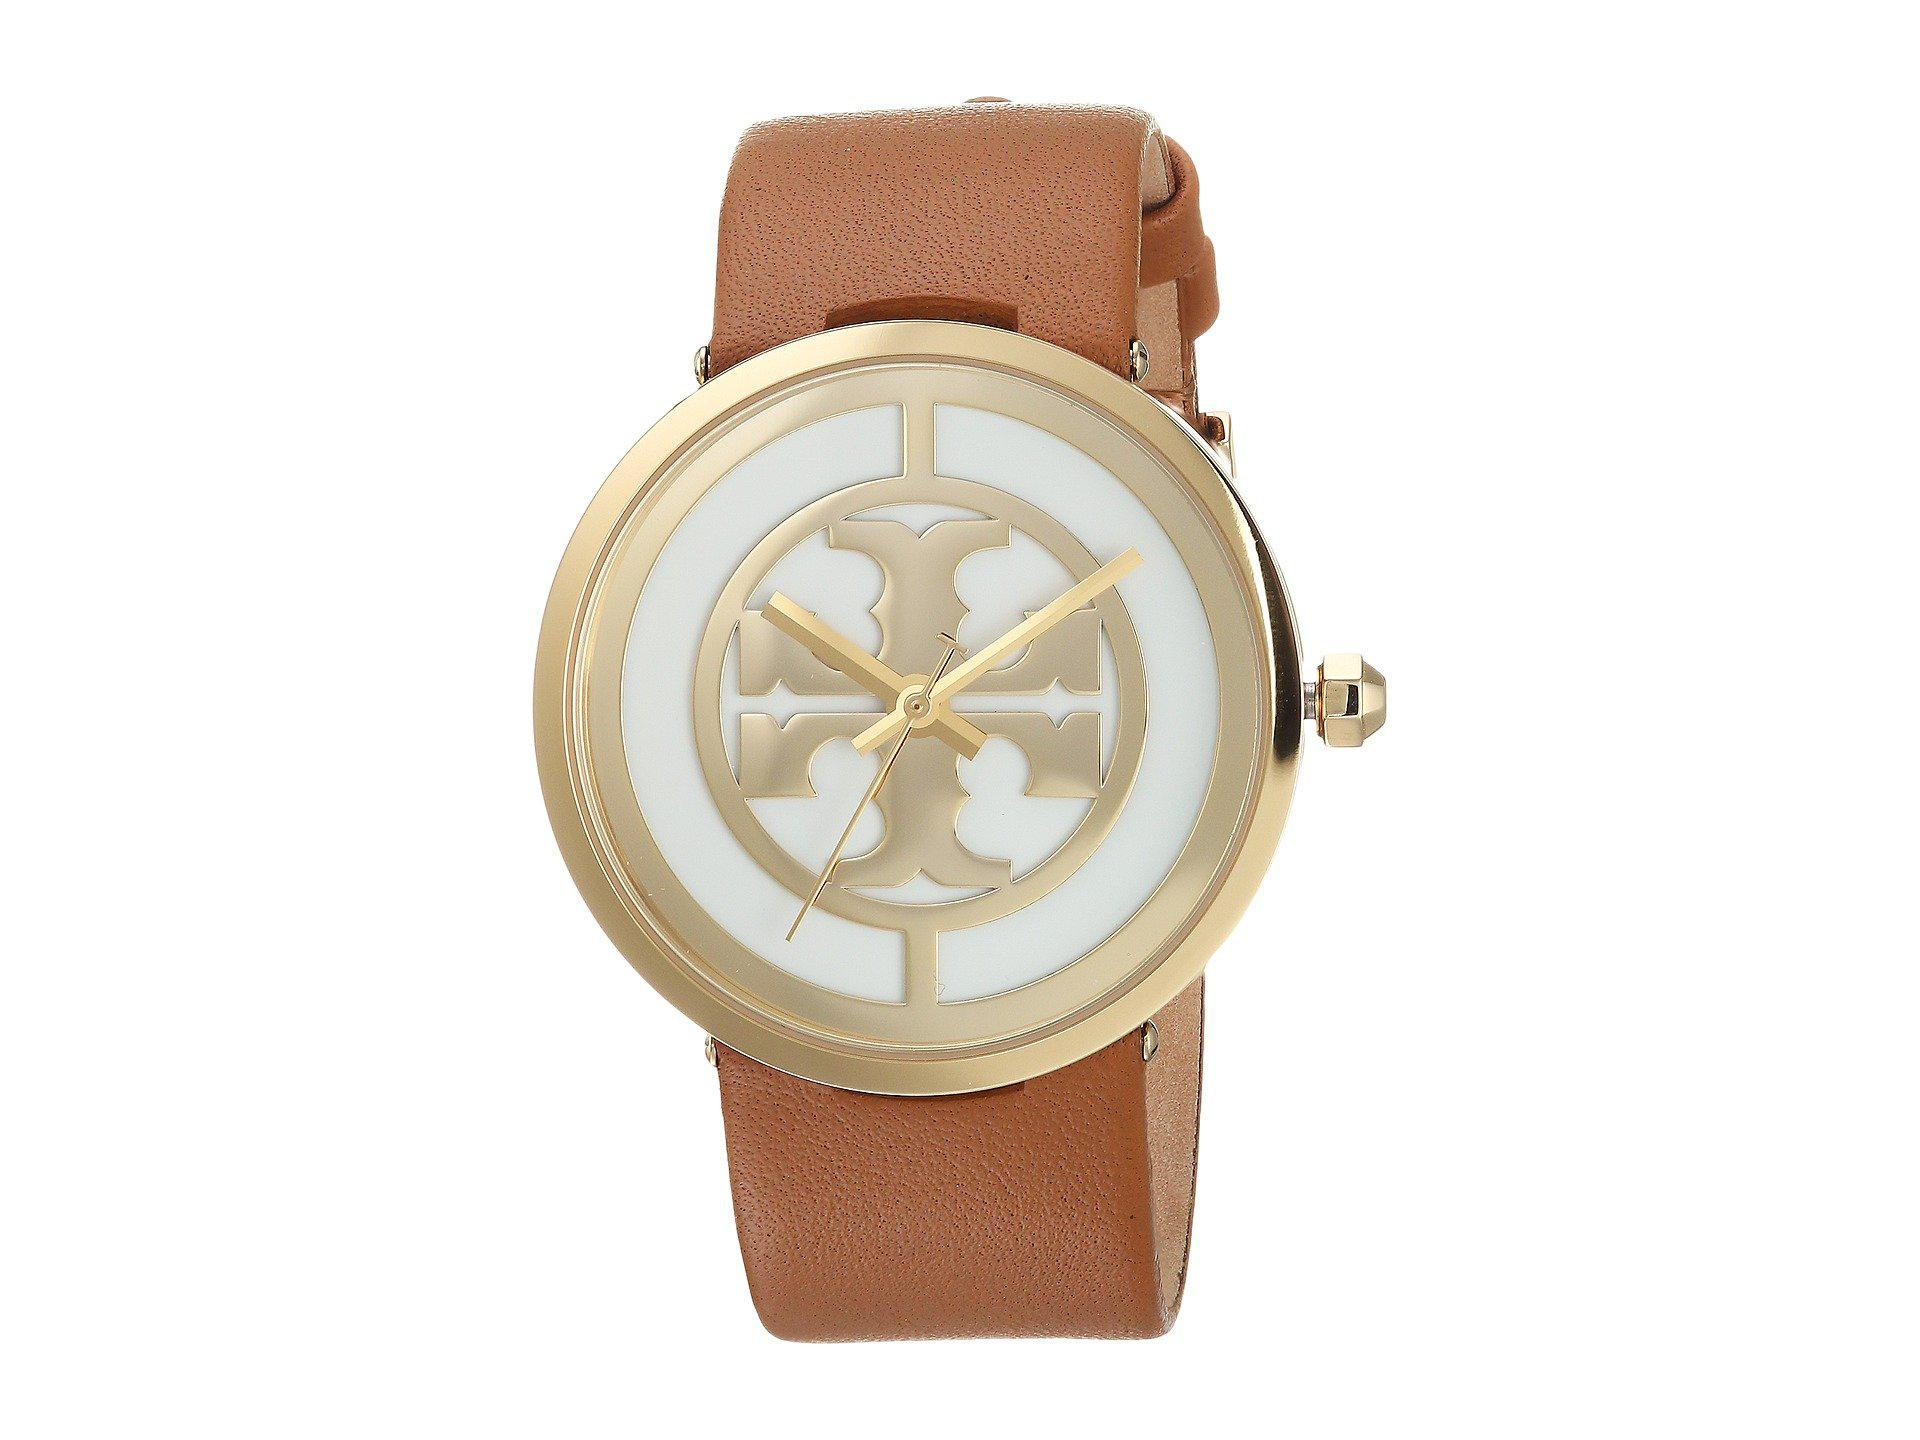 3997e1e3bef8 Tory Burch - Reva - Tbw4020 (light Brown) Watches - Lyst. View fullscreen